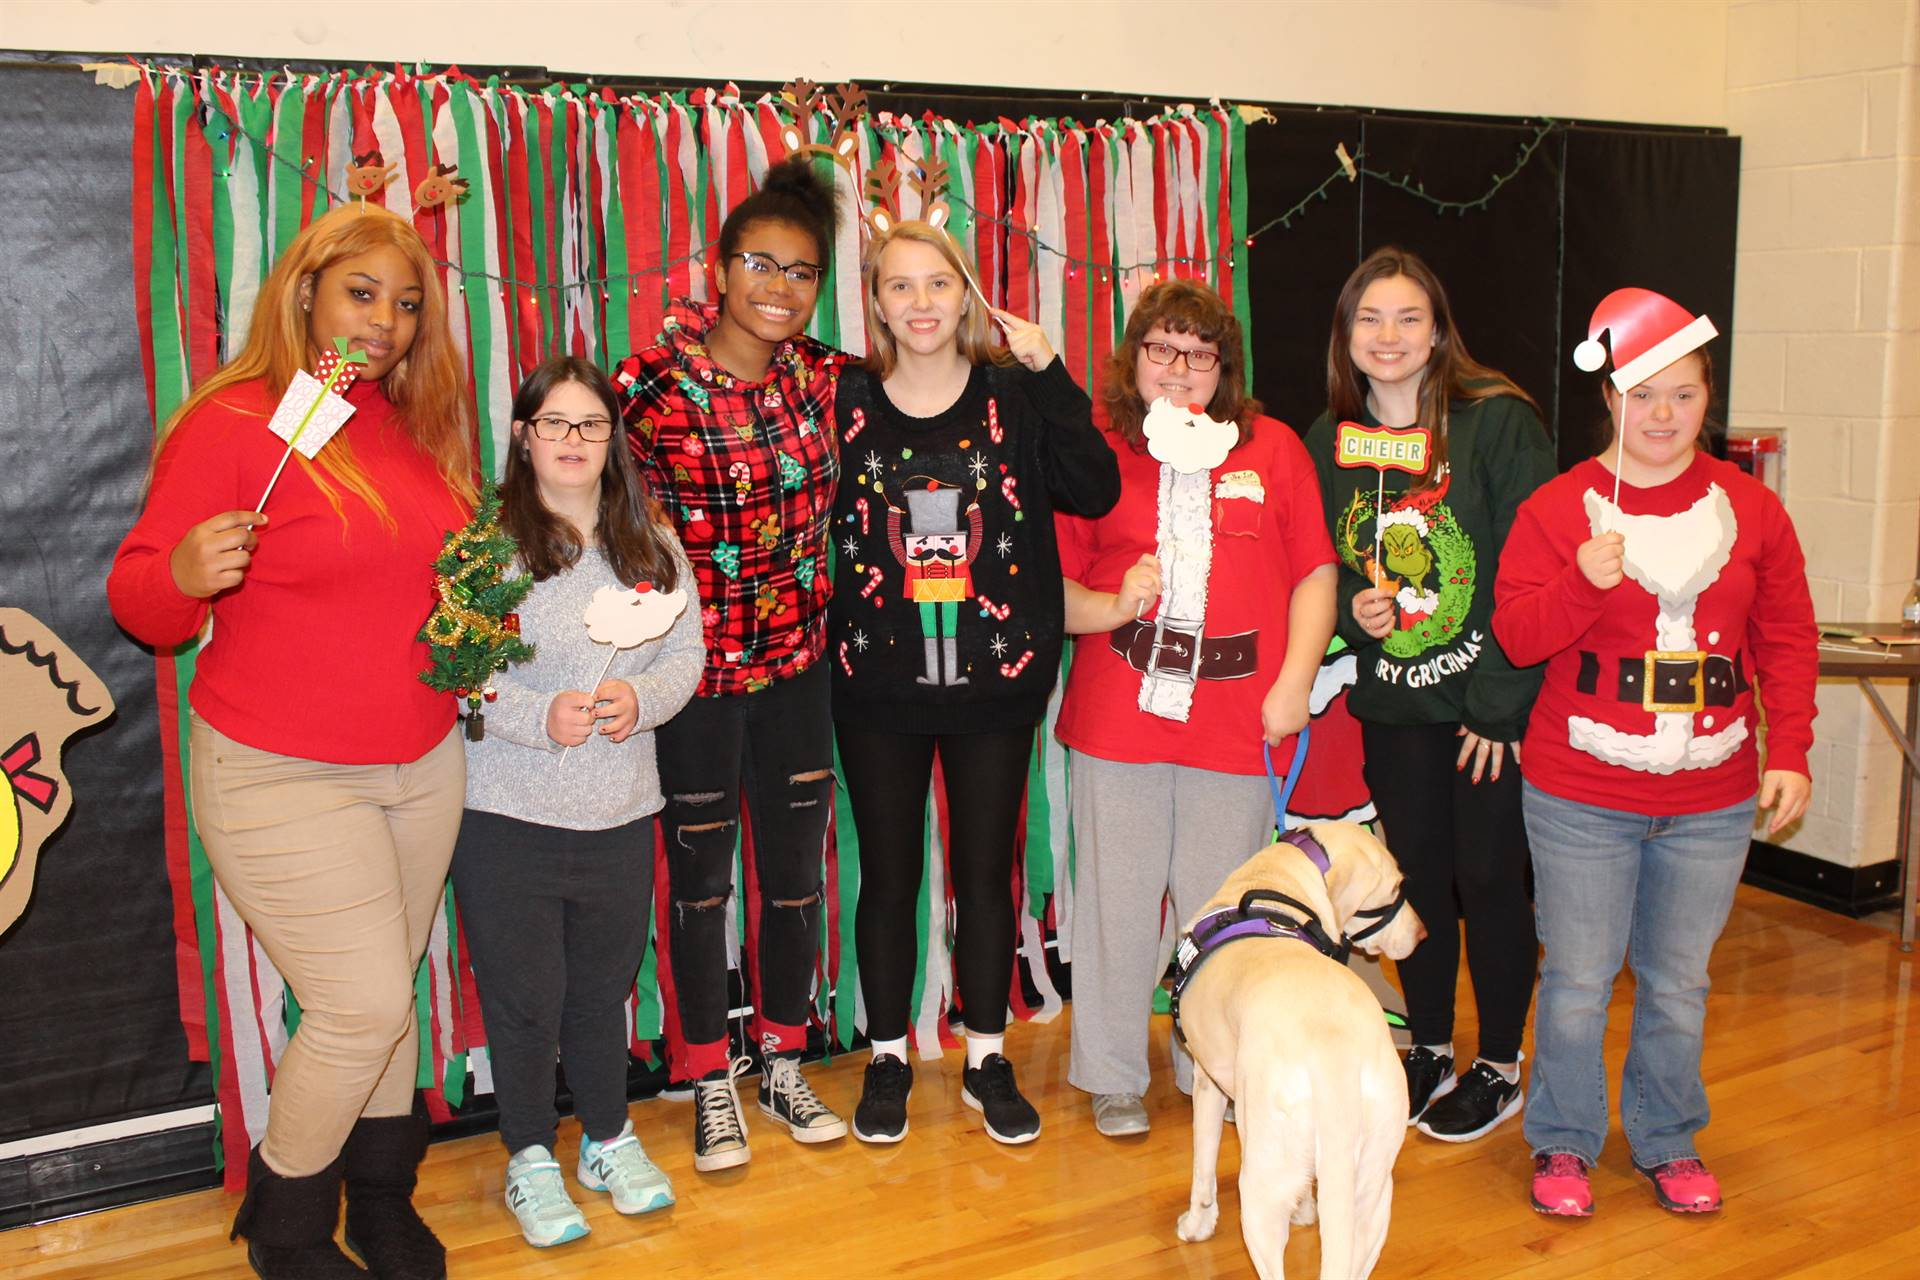 BPHS students at the Holiday Sweater Dance